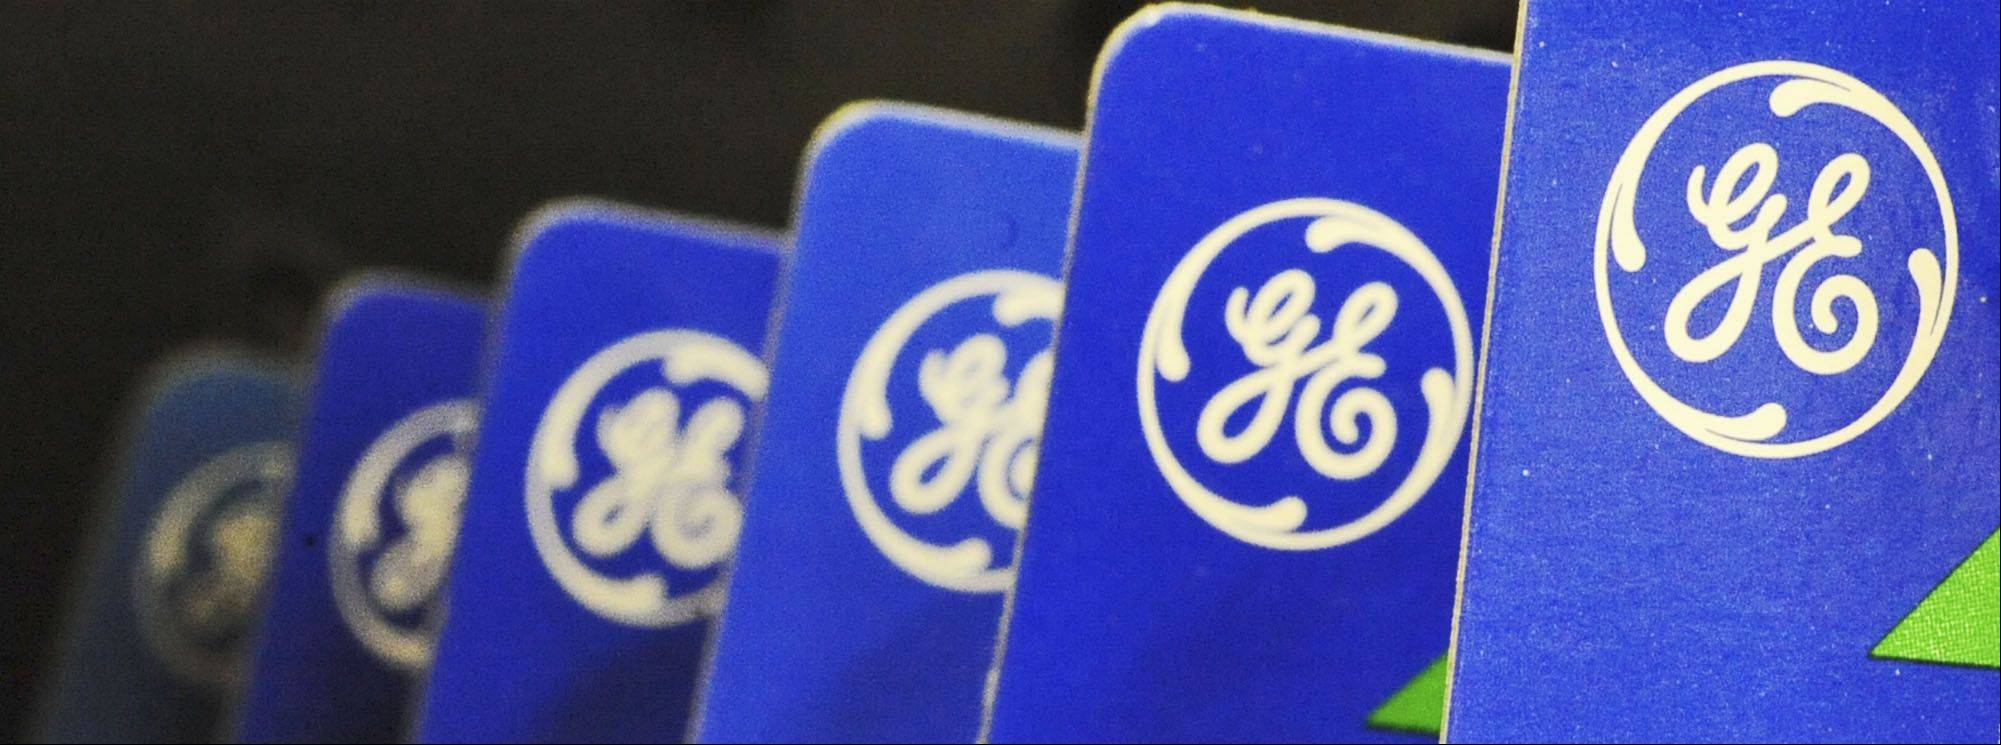 General Electric says its net income fell 16 percent in the second quarter because of losses in businesses it has divested and an increase in pension costs.